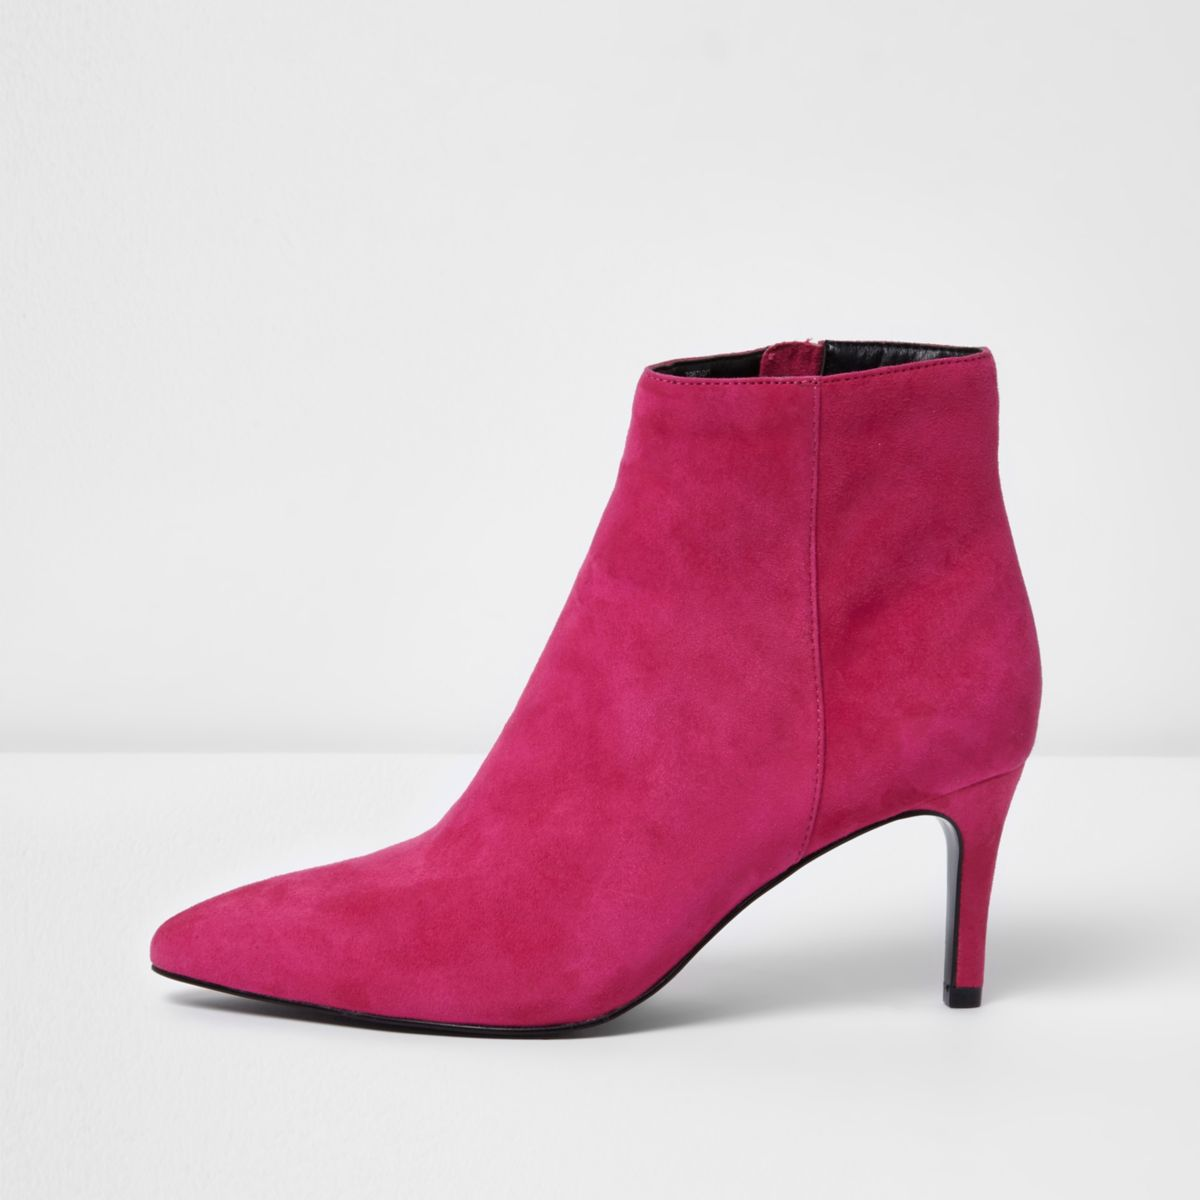 pink suede pointed kitten heel boots boots shoes